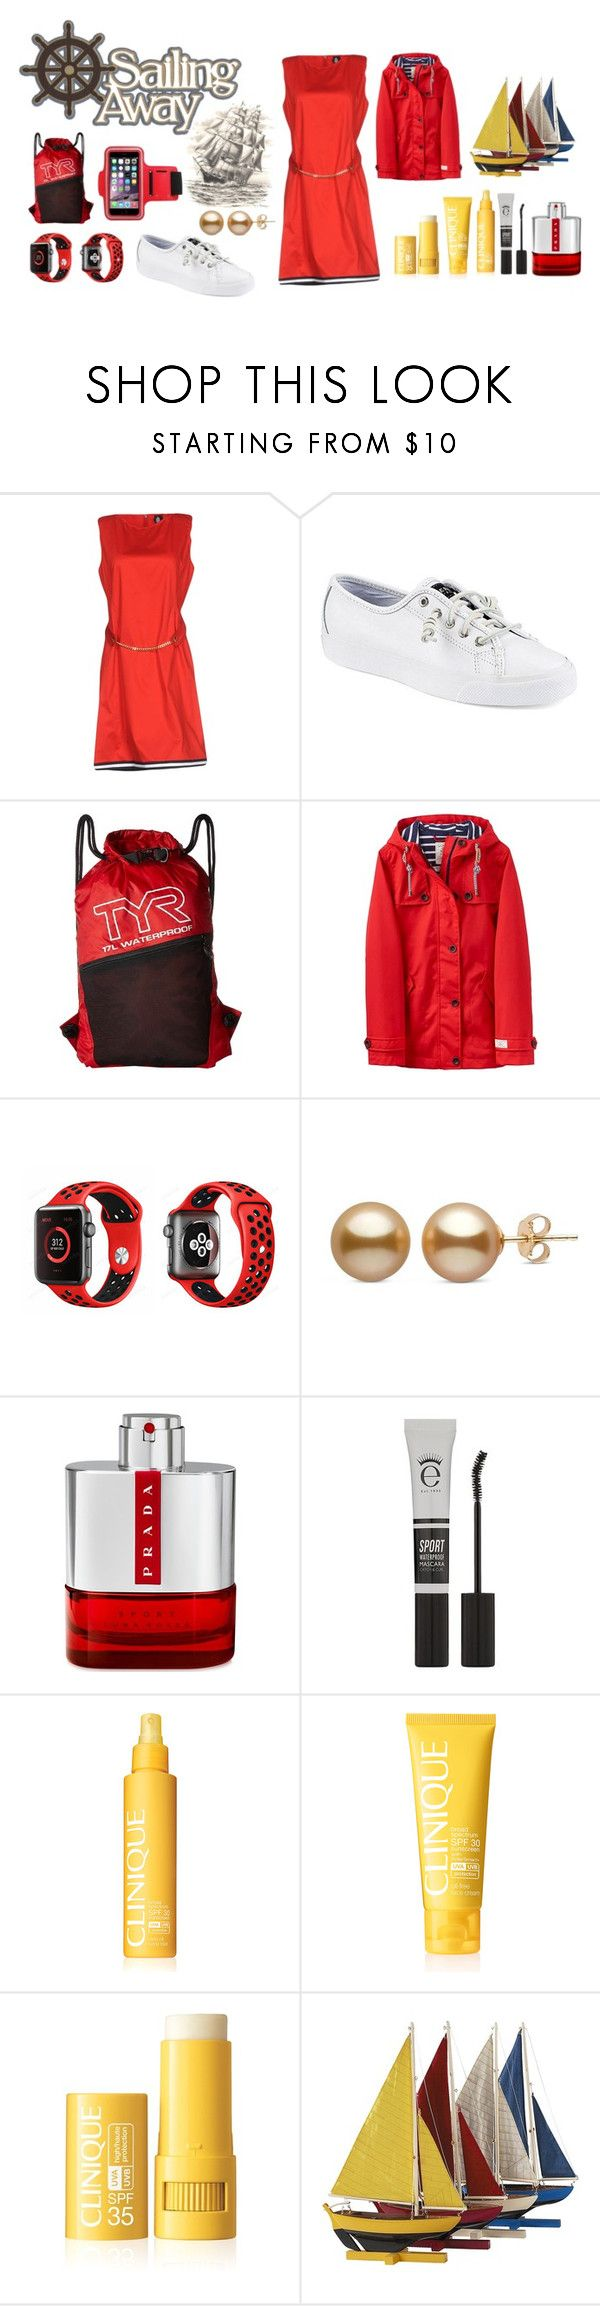 """""""№ 45"""" by katerinakozlova ❤ liked on Polyvore featuring Marina Yachting, Sperry, TYR, Joules, Apple, Prada, Eyeko, Clinique and Authentic Models"""